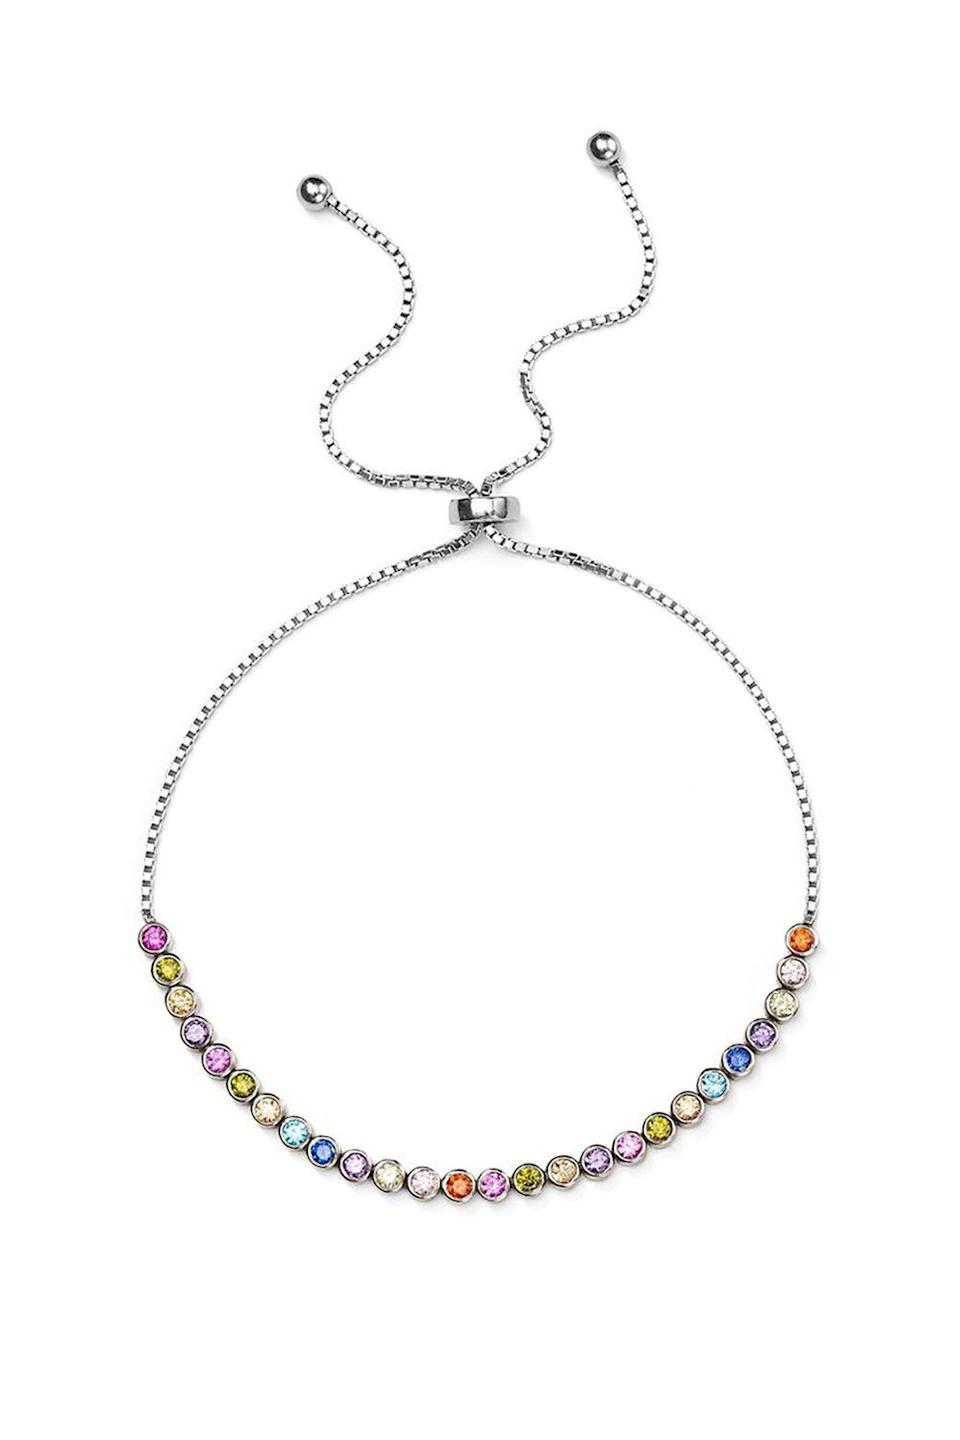 """<p><strong>Aqua</strong></p><p>bloomingdales.com</p><p><strong>$59.00</strong></p><p><a href=""""https://www.bloomingdales.com/shop/product/aqua-multicolor-stone-sterling-silver-slider-bracelet-100-exclusive?ID=3030399"""" rel=""""nofollow noopener"""" target=""""_blank"""" data-ylk=""""slk:SHOP IT"""" class=""""link rapid-noclick-resp"""">SHOP IT</a></p><p>If there's one piece of jewelry I wear every day, it's a silver bracelet. This option from Aqua is so thin, the chain looks nearly invisible. The brightly-colored stones, however, won't go unnoticed. If you're looking for a gift for someone special this spring (ahem, Mother's Day), present them this bracelet. </p>"""